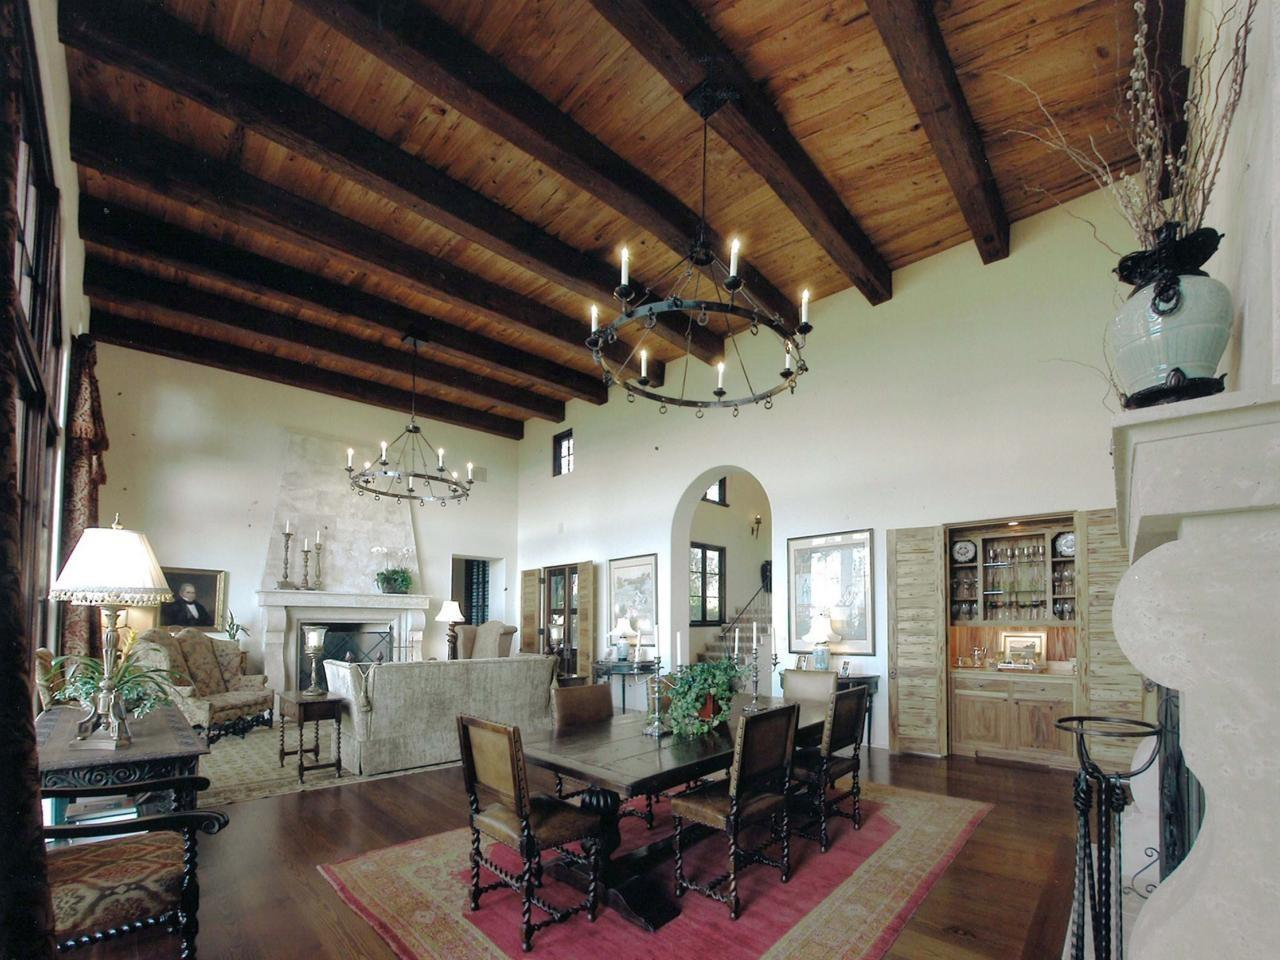 Spanish Inspired Rooms Interior Design Styles